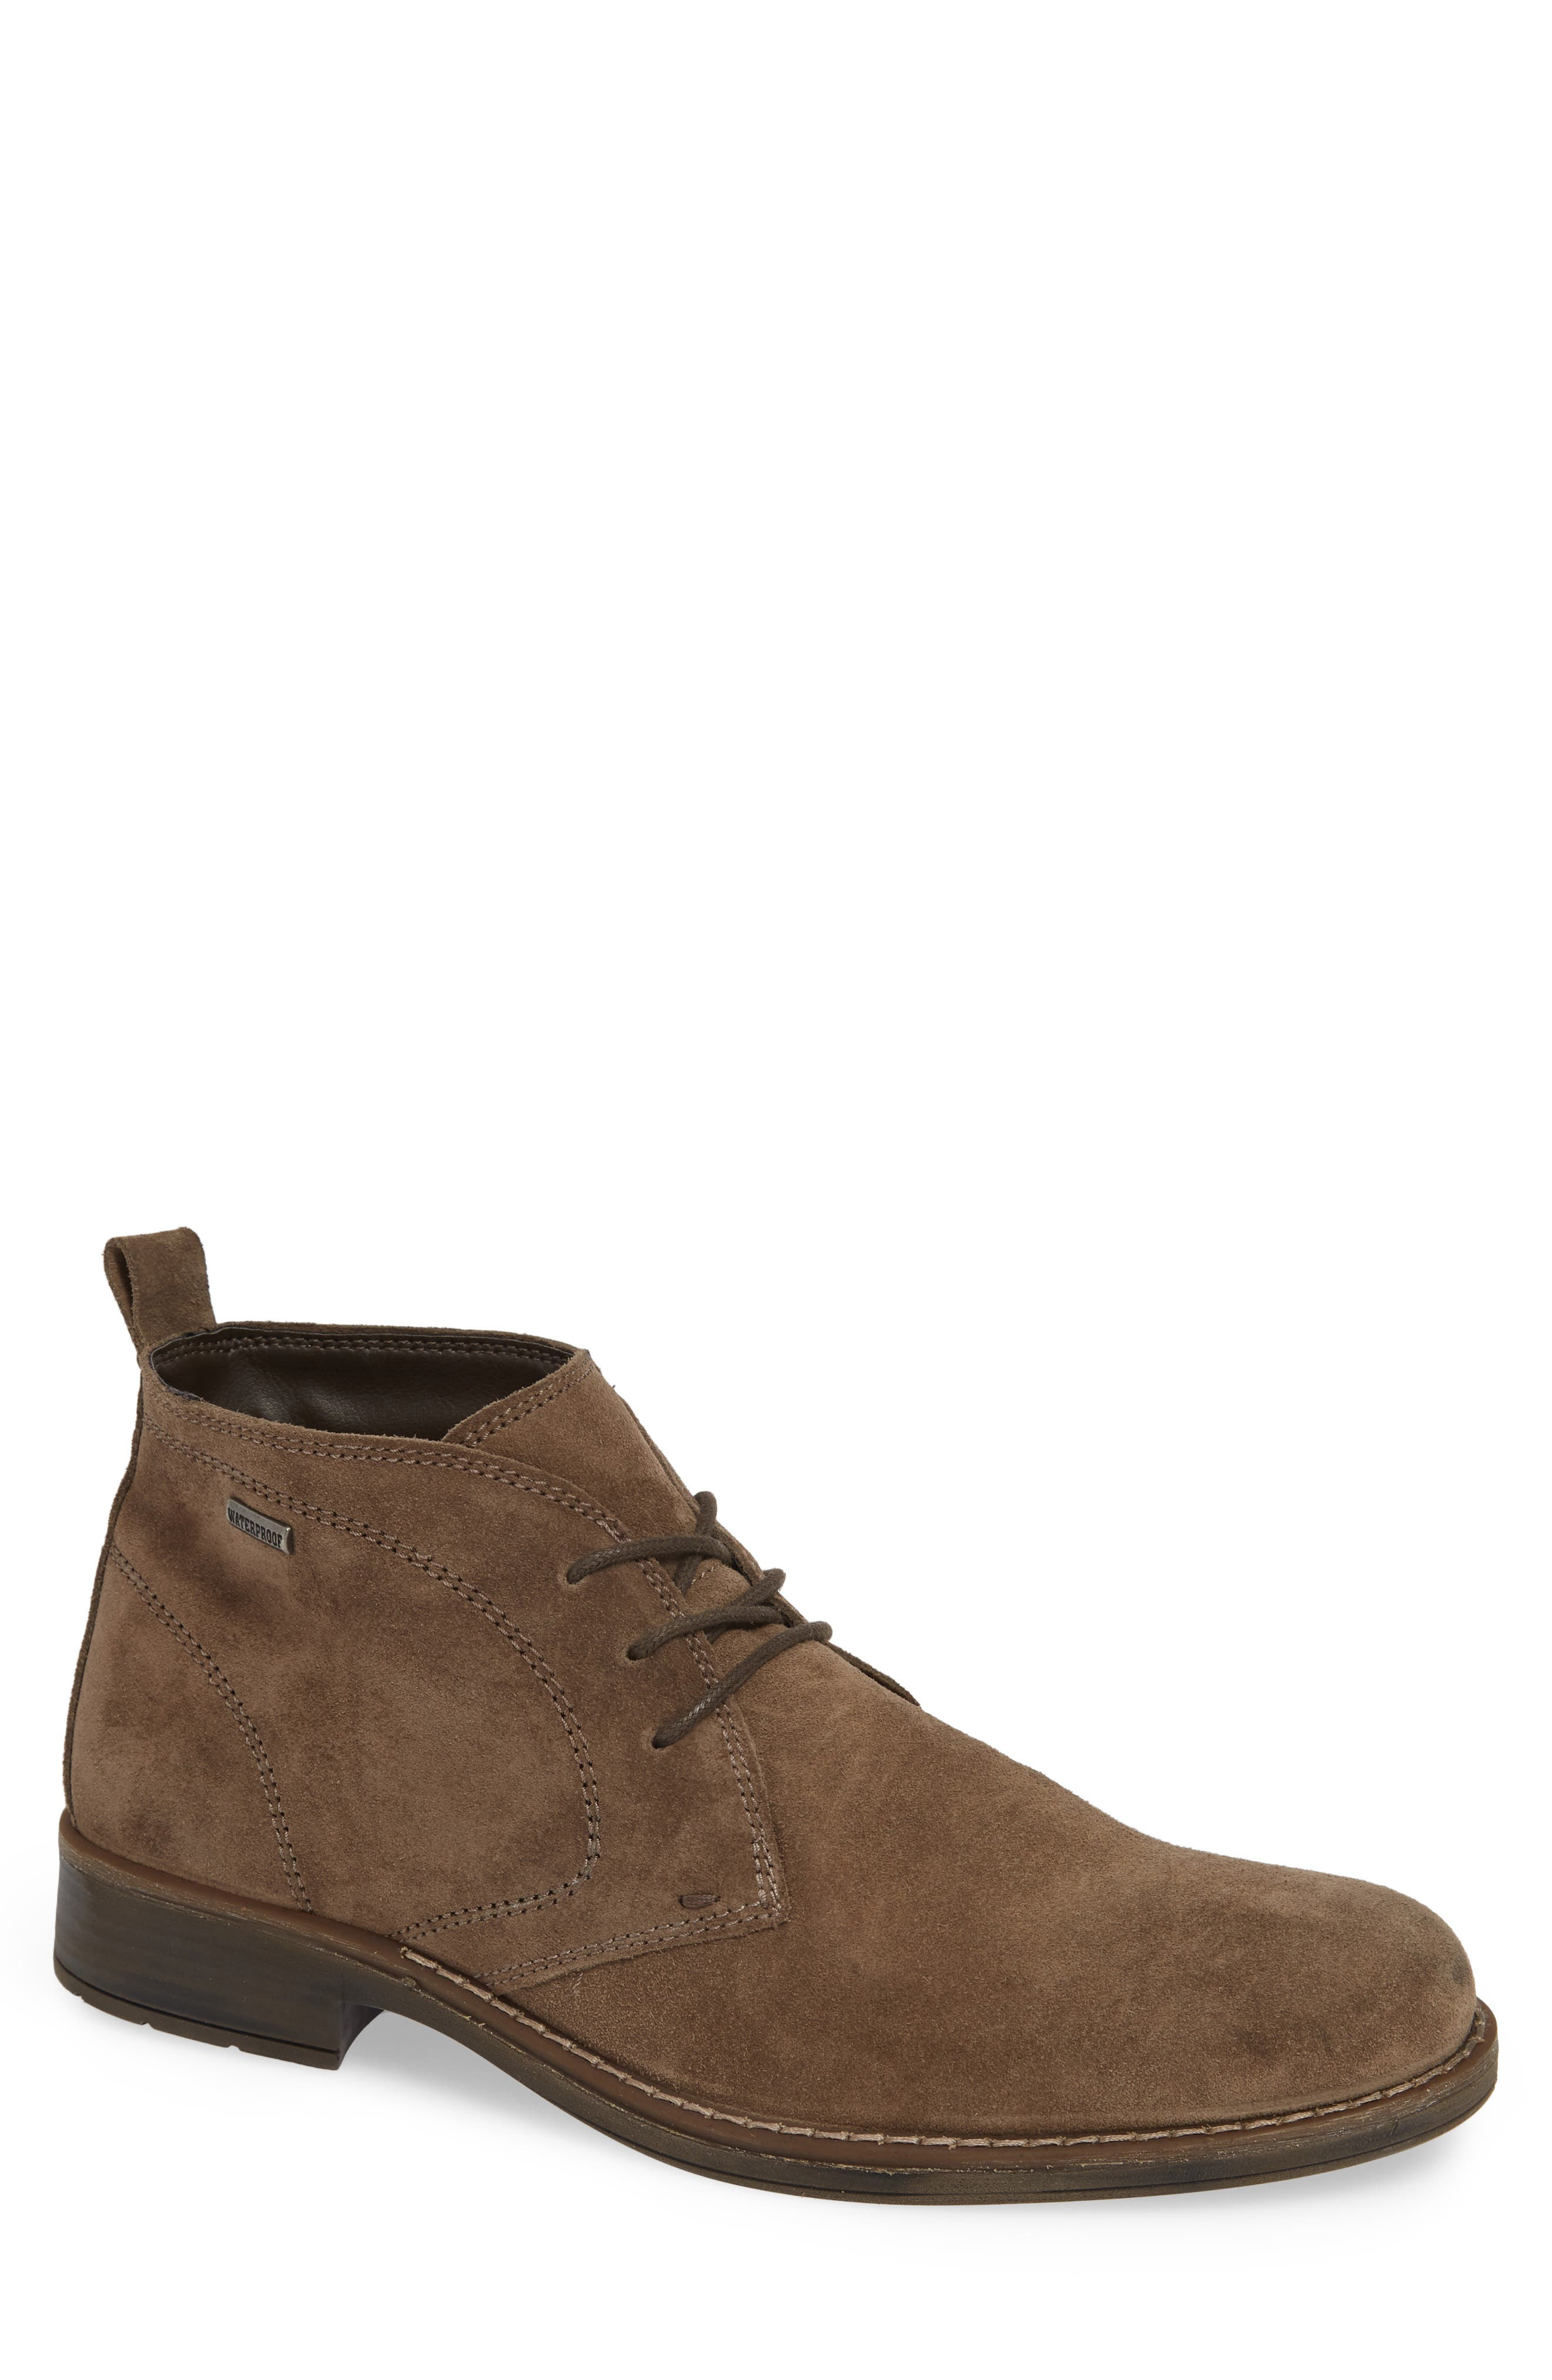 Stevens Waterproof Chukka Boot,                         Main,                         color, TAUPE SUEDE